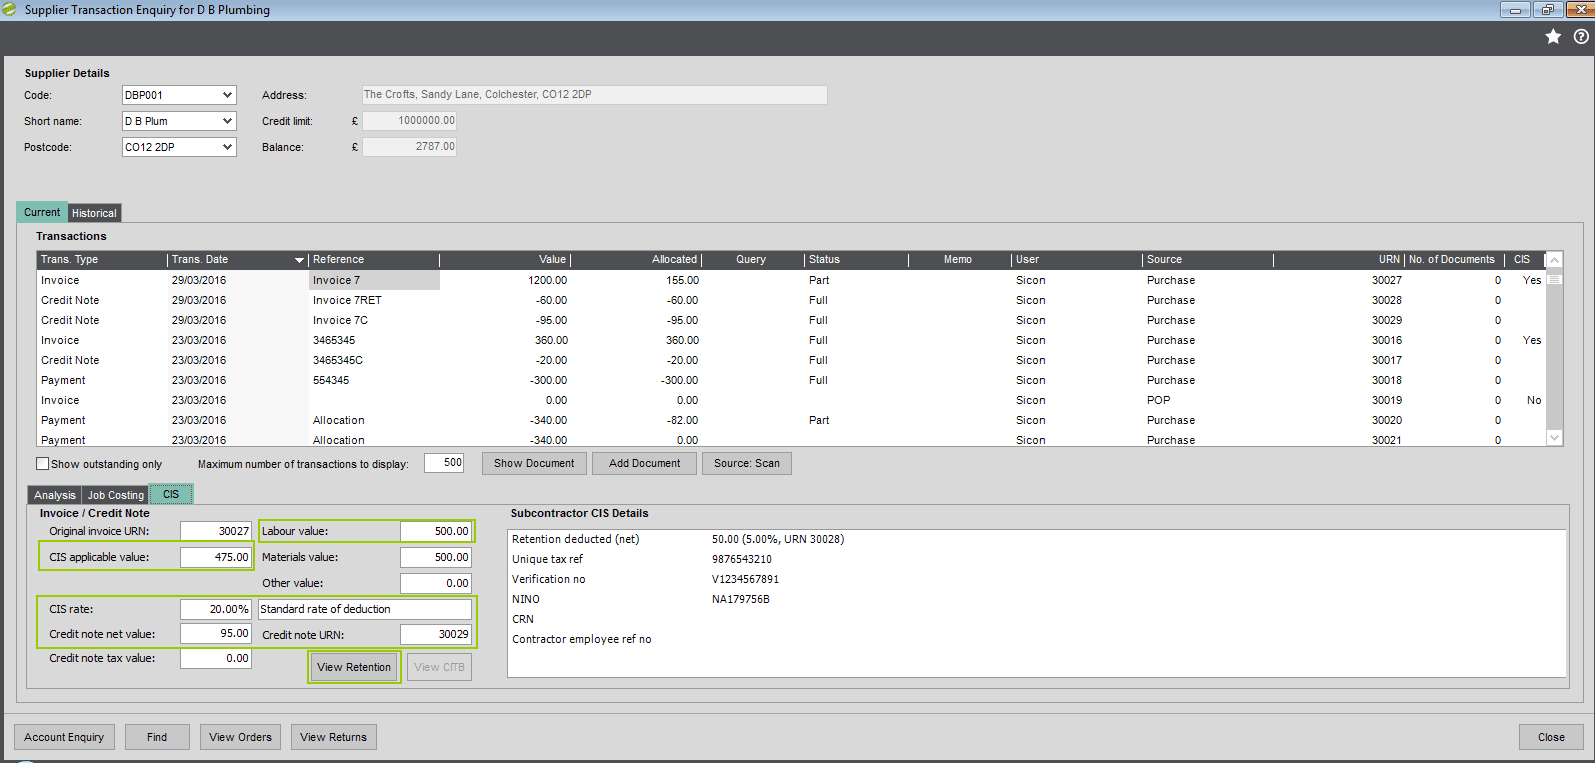 CIS SUpplier Transaction Enquiry Screen